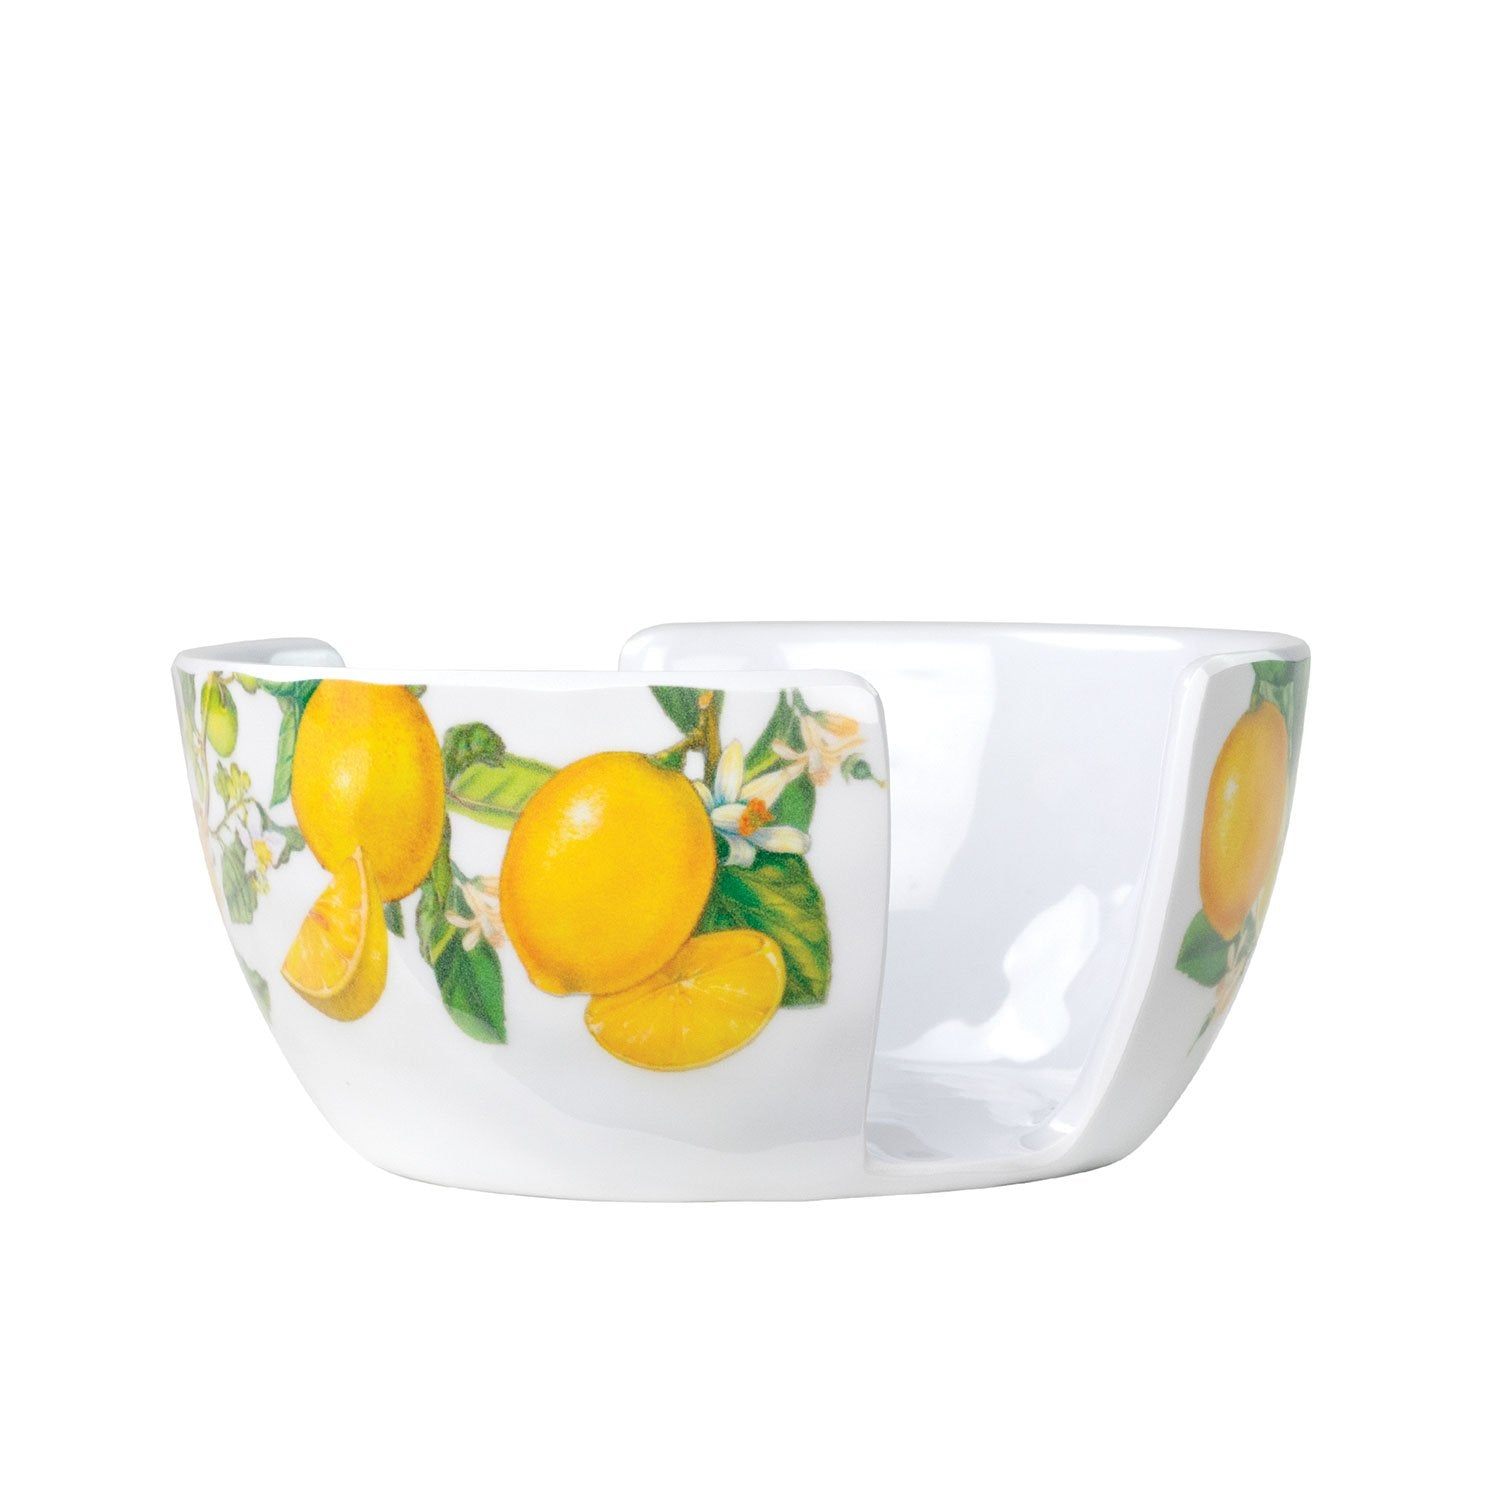 Lemon Basil Melamine Serveware Sponge Holder